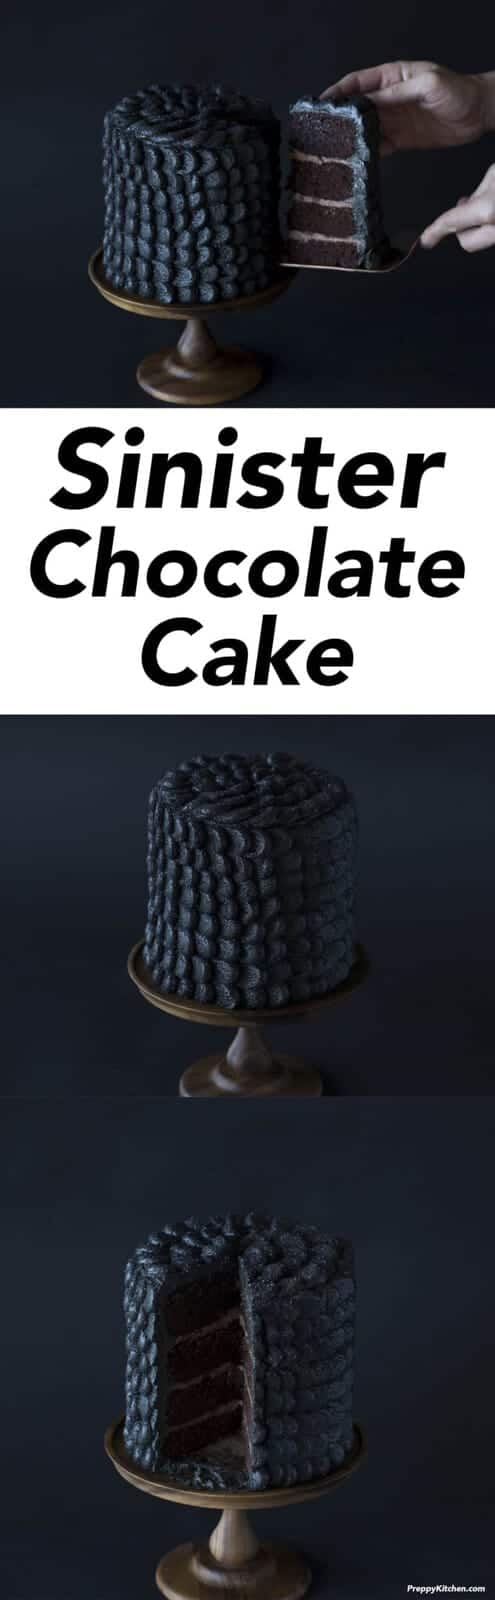 Sinfully delicious or pure evil?? This chocolate cake is coated in delicious black scales giving it a nefarious look that's perfect for Halloween! Click over for full recipe and video.